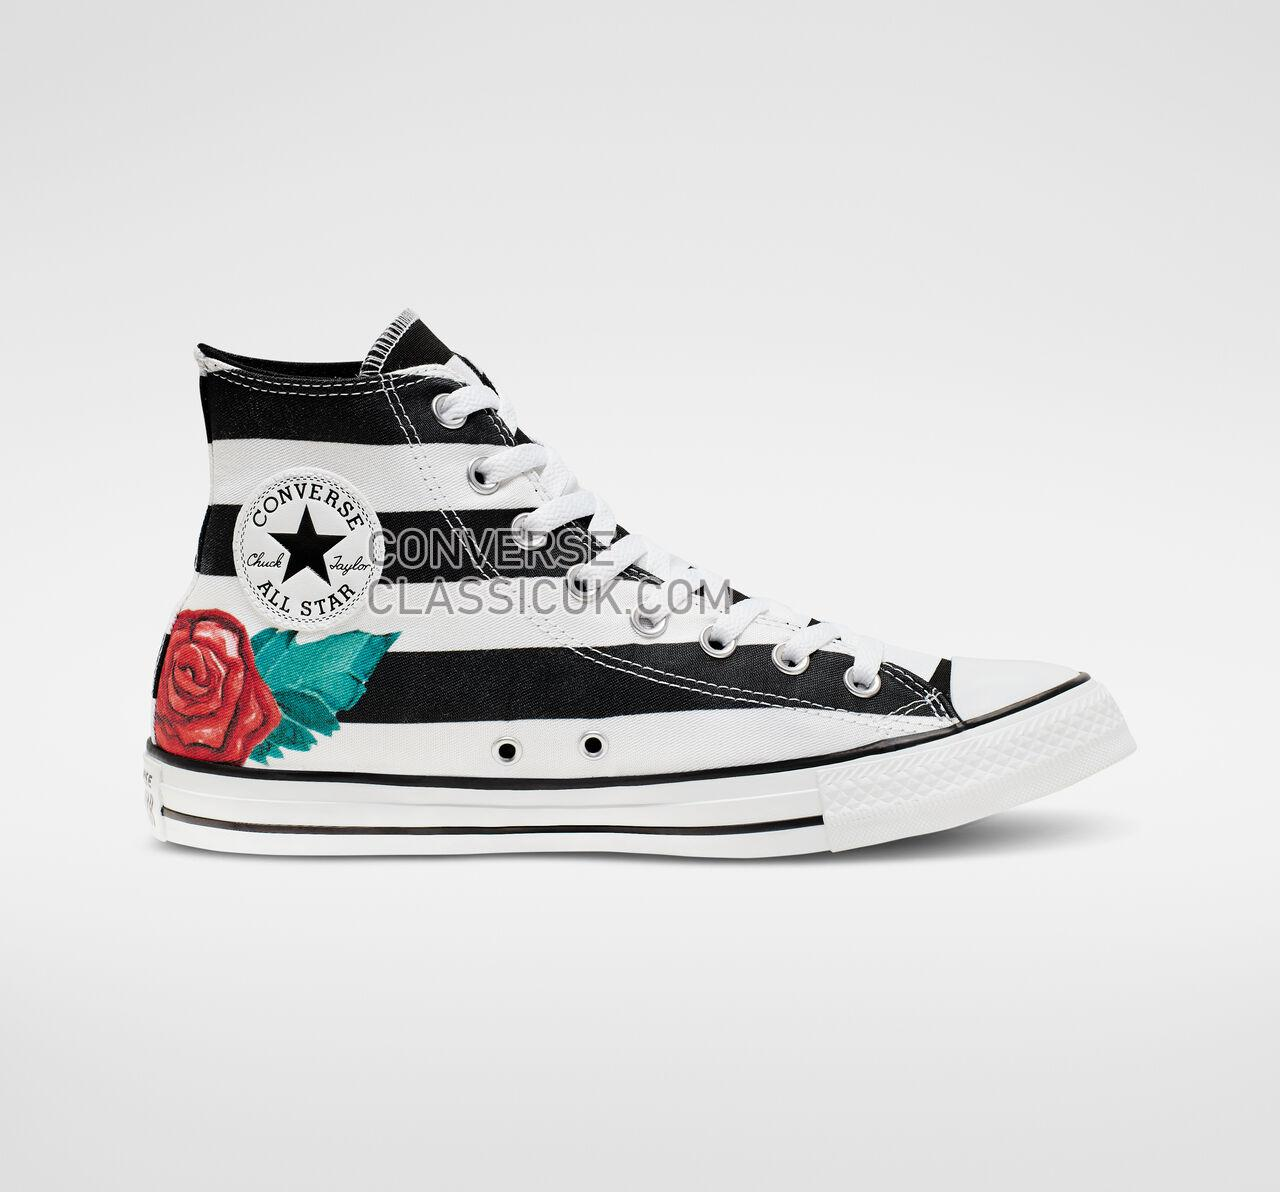 Converse Chuck Taylor All Star Skull Print High Top Mens Womens Unisex 165821C White/Black/Red Shoes